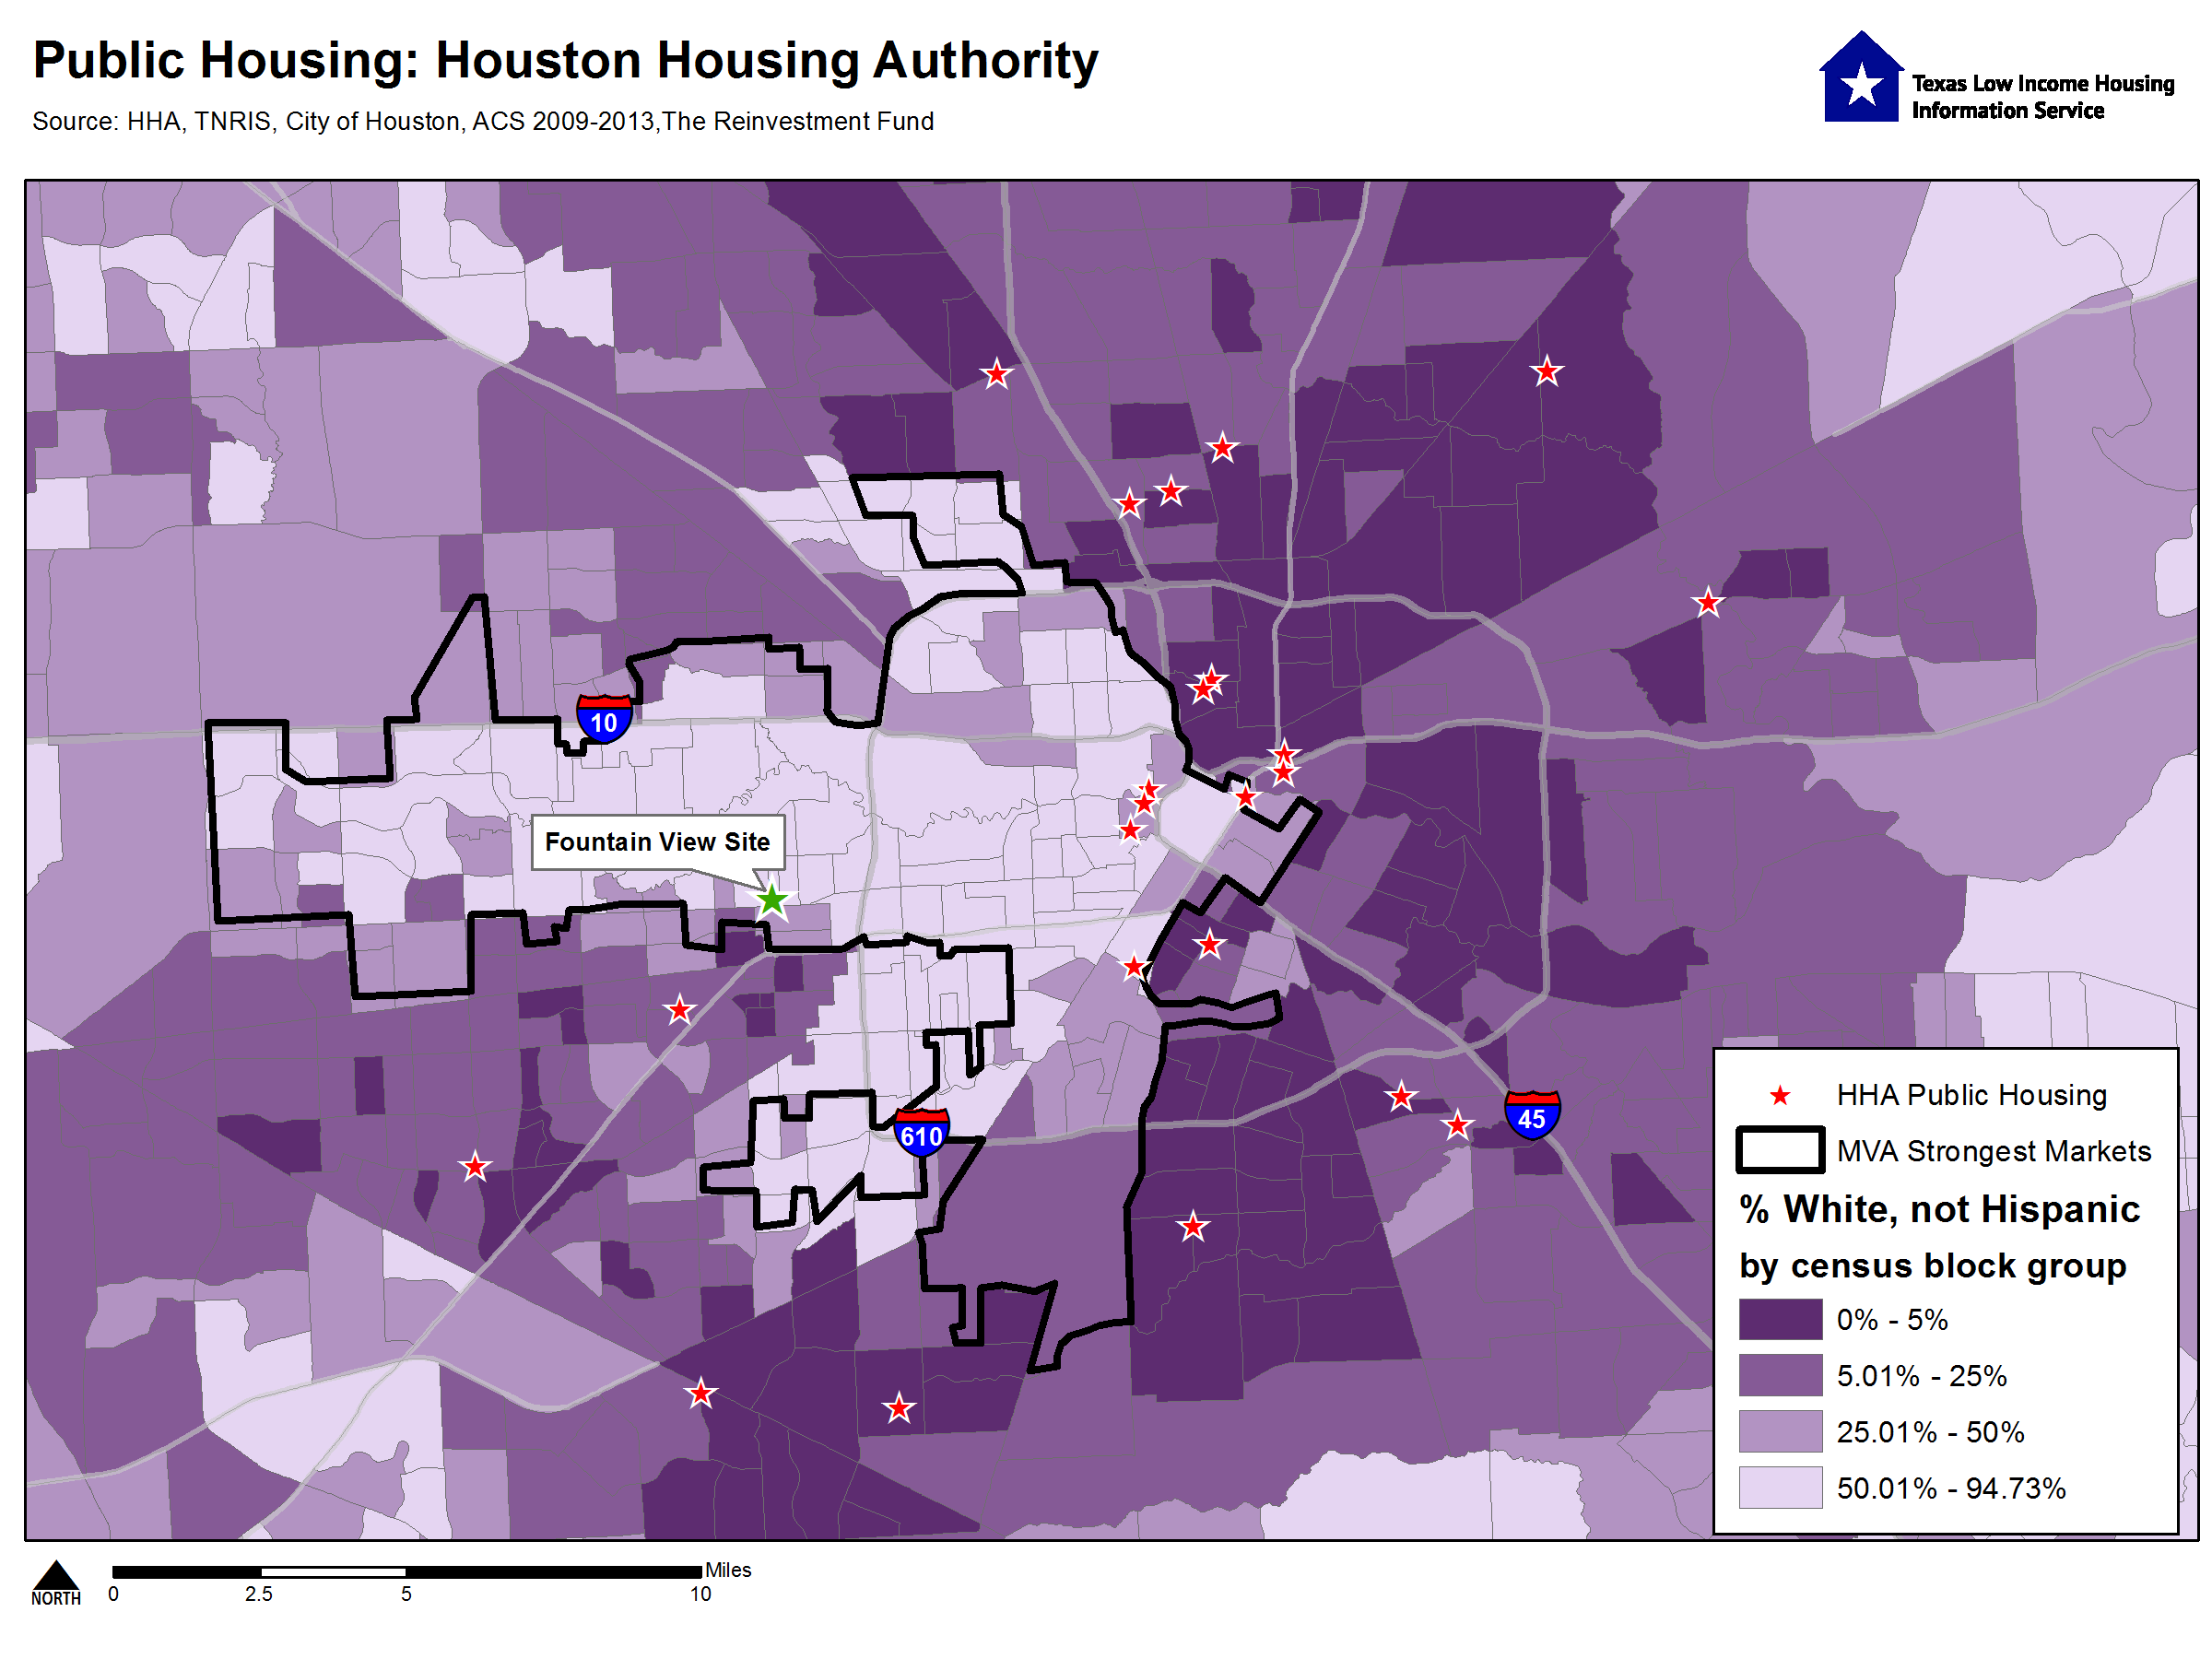 Whats behind the opposition to public housing in a high